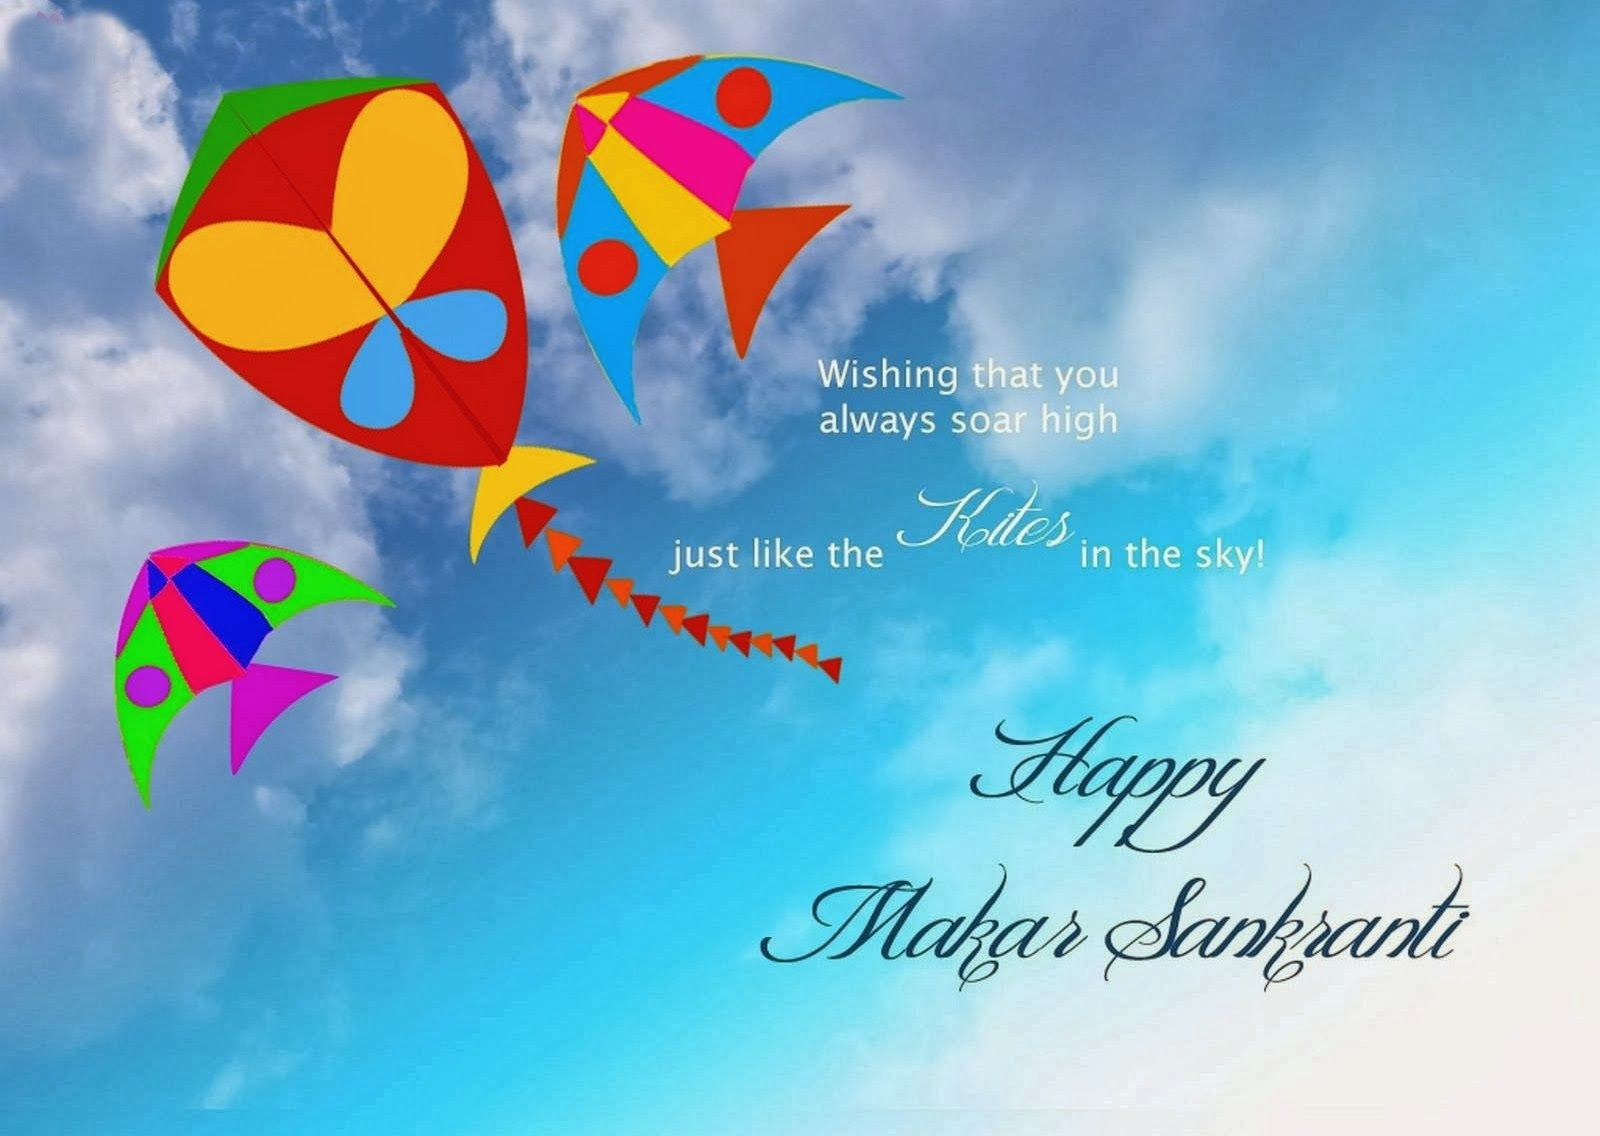 Happy Makar Sankranti Greetings And Wishes Messages Sankranti